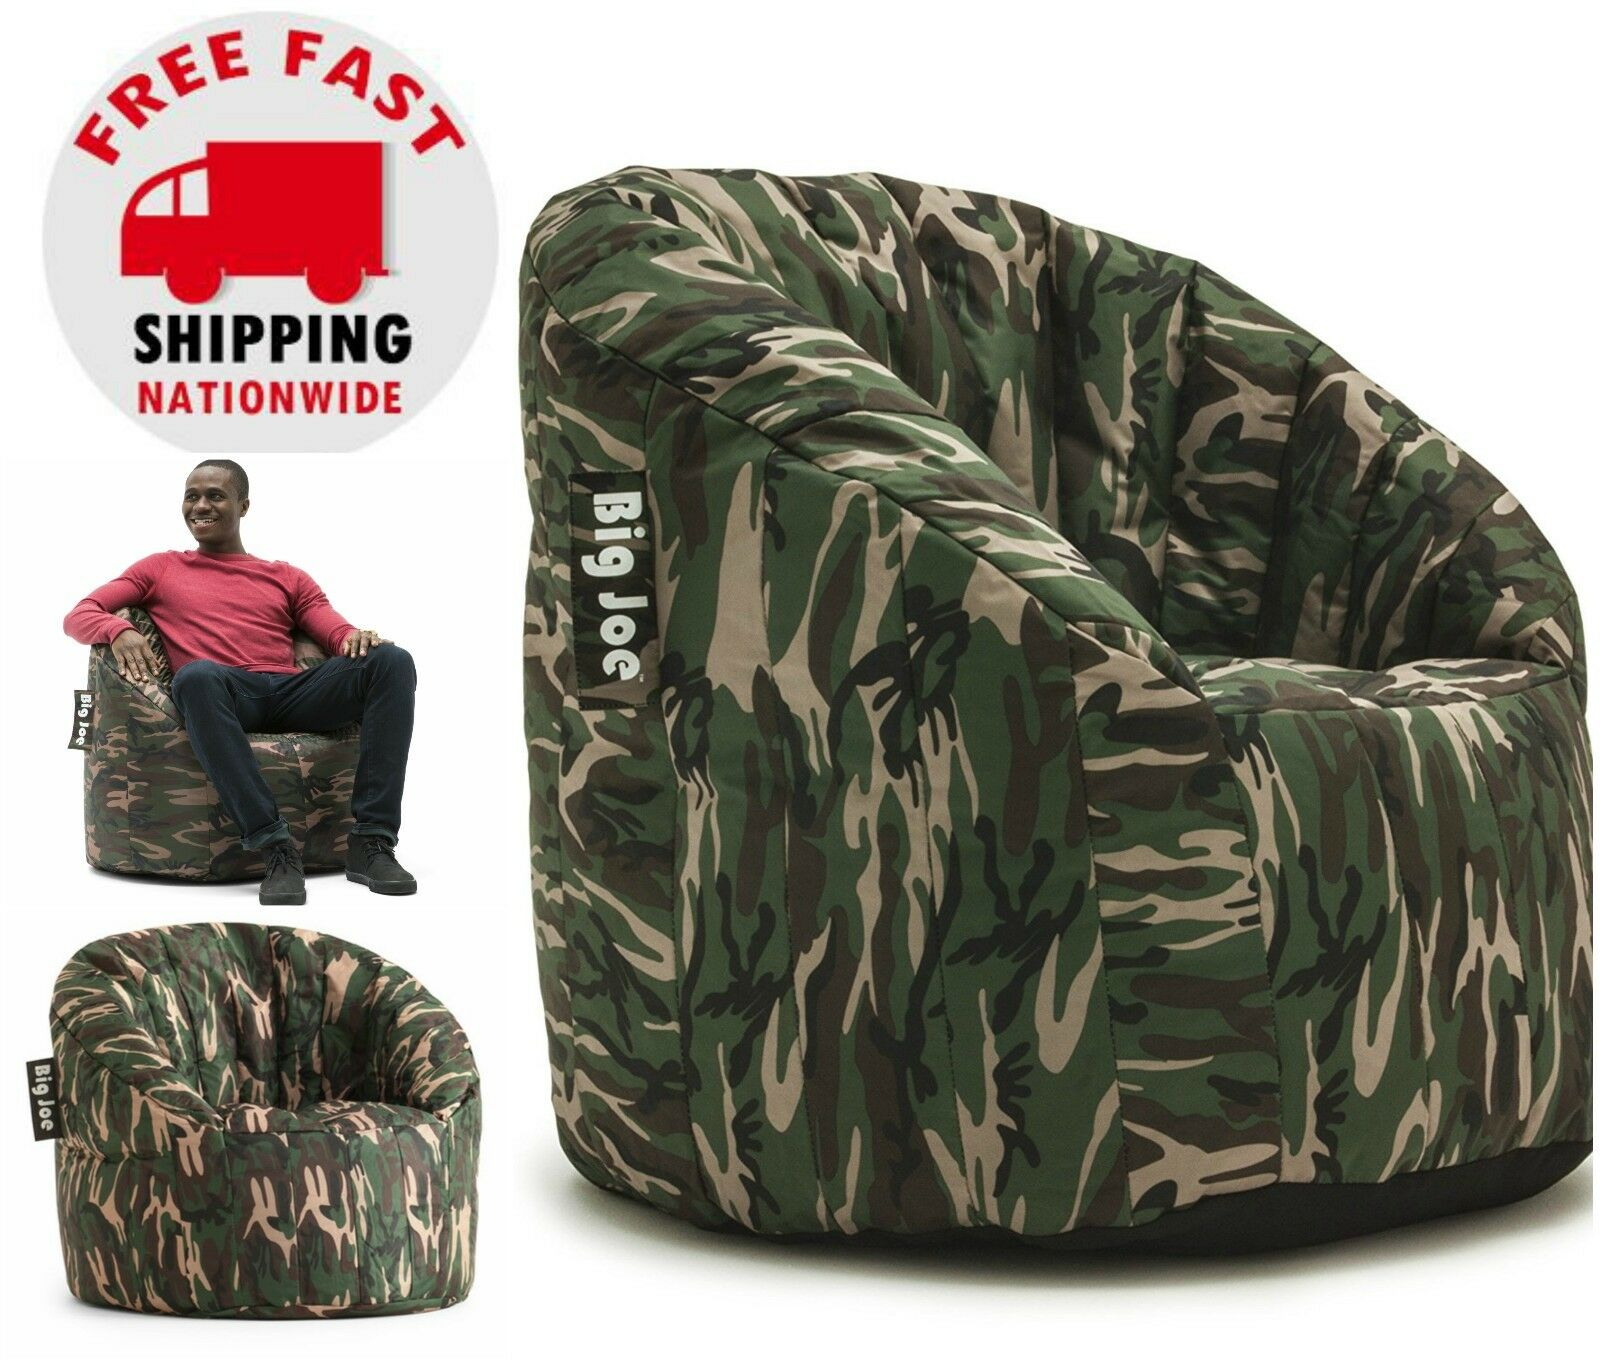 Dorm Room Chairs Big Joe Milano Bean Bag Chair Camo College Dorm Room Kids Video Gaming Tv Lounge